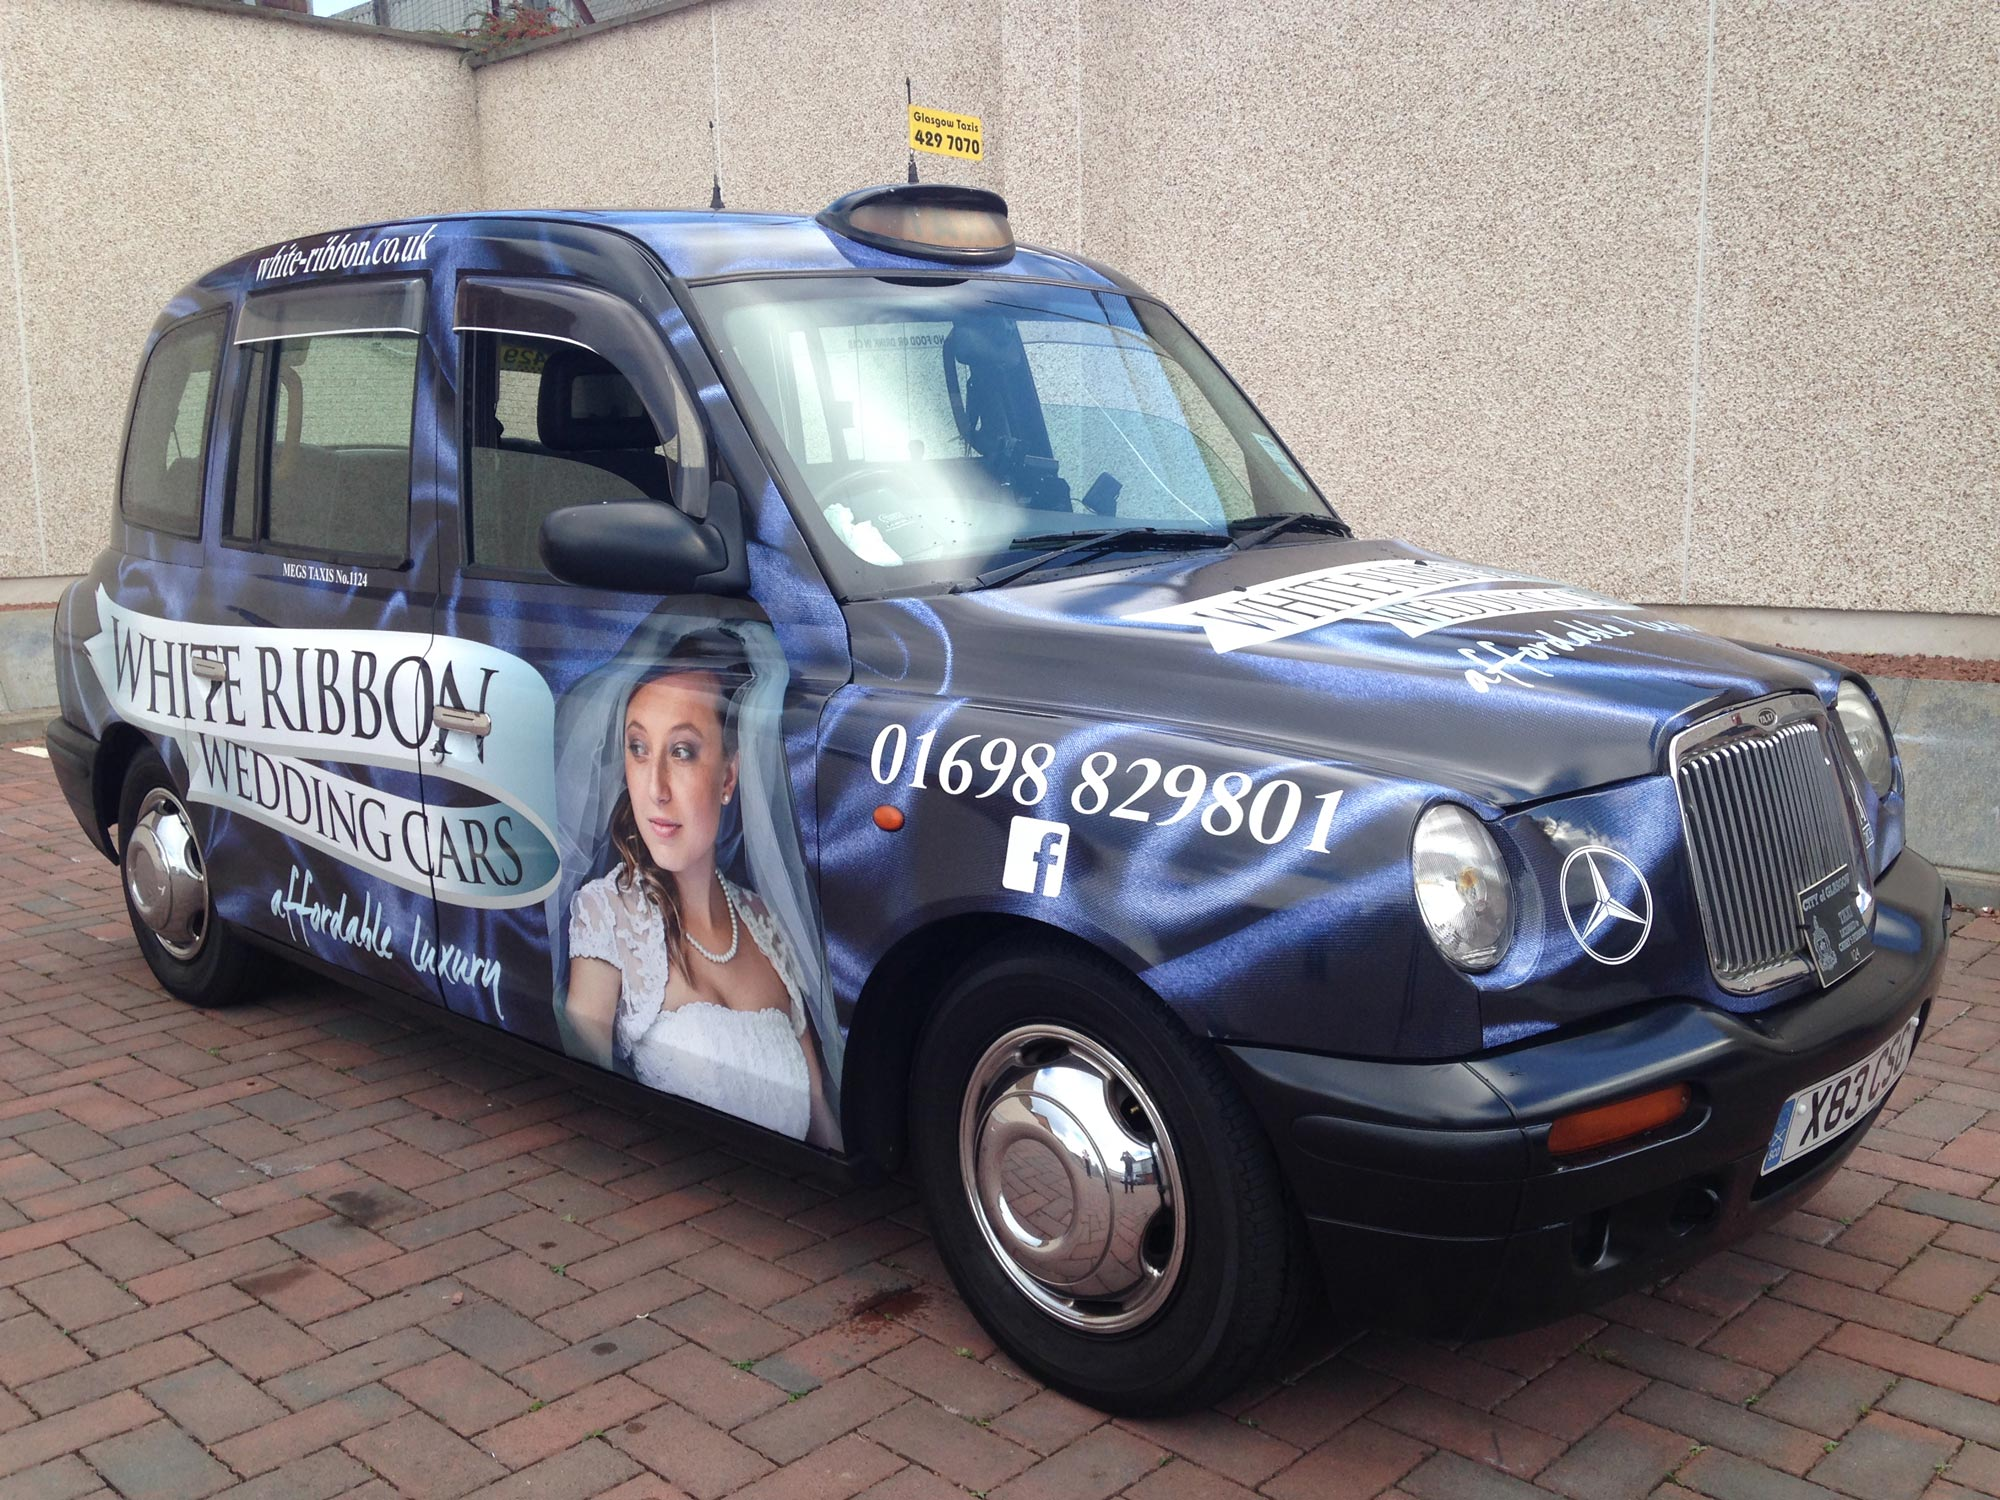 White Ribbon Wedding Cars Taxi Wrap